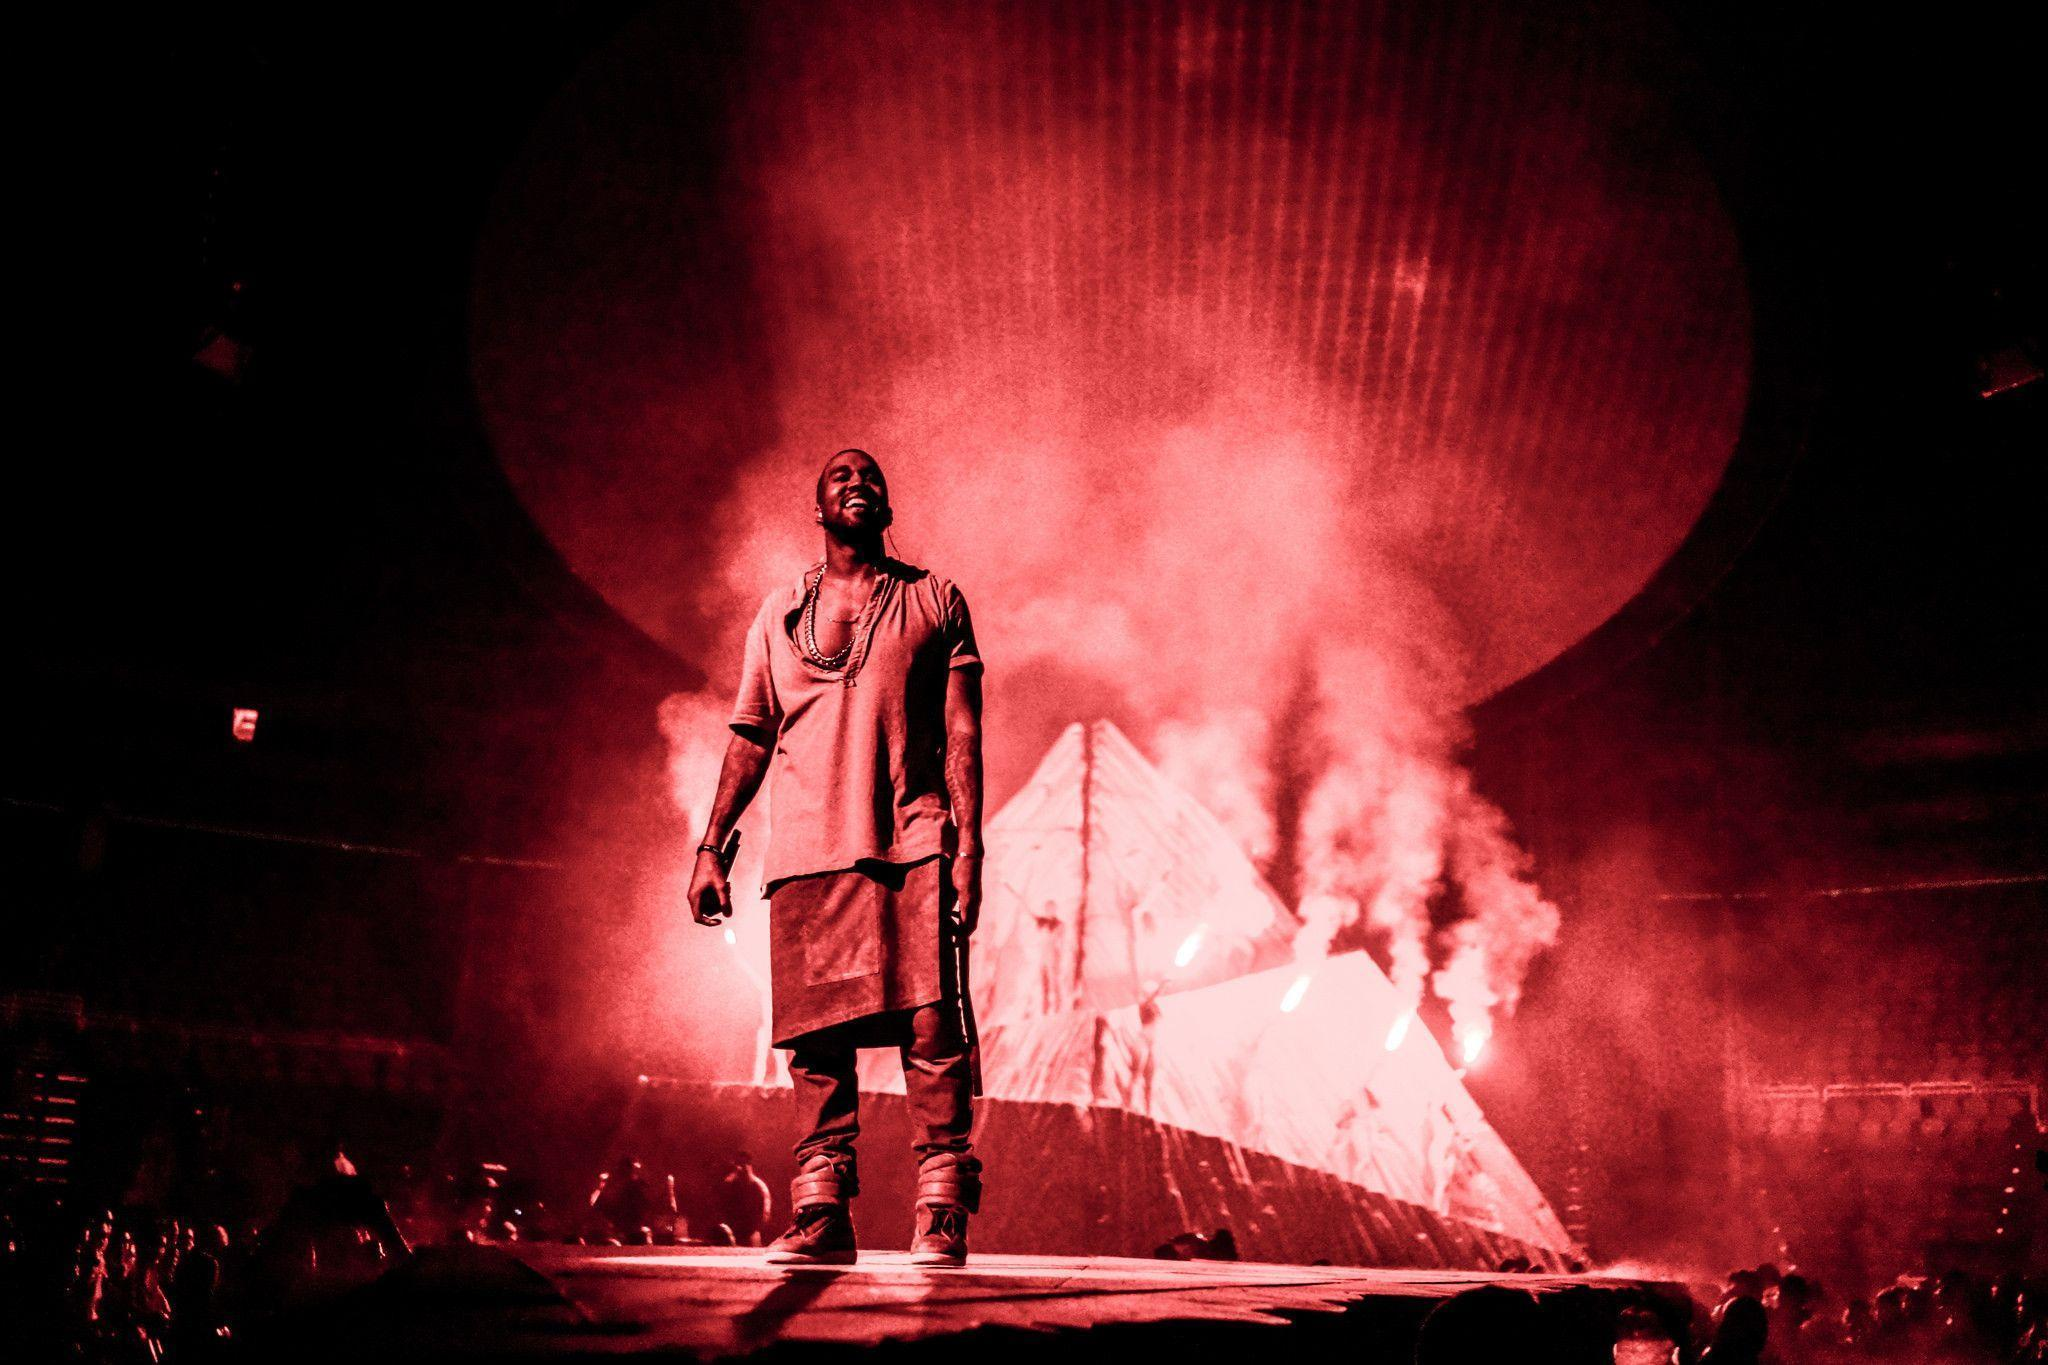 Kanye West Wallpaper – The Best Way to Enhance Your Computer Screen